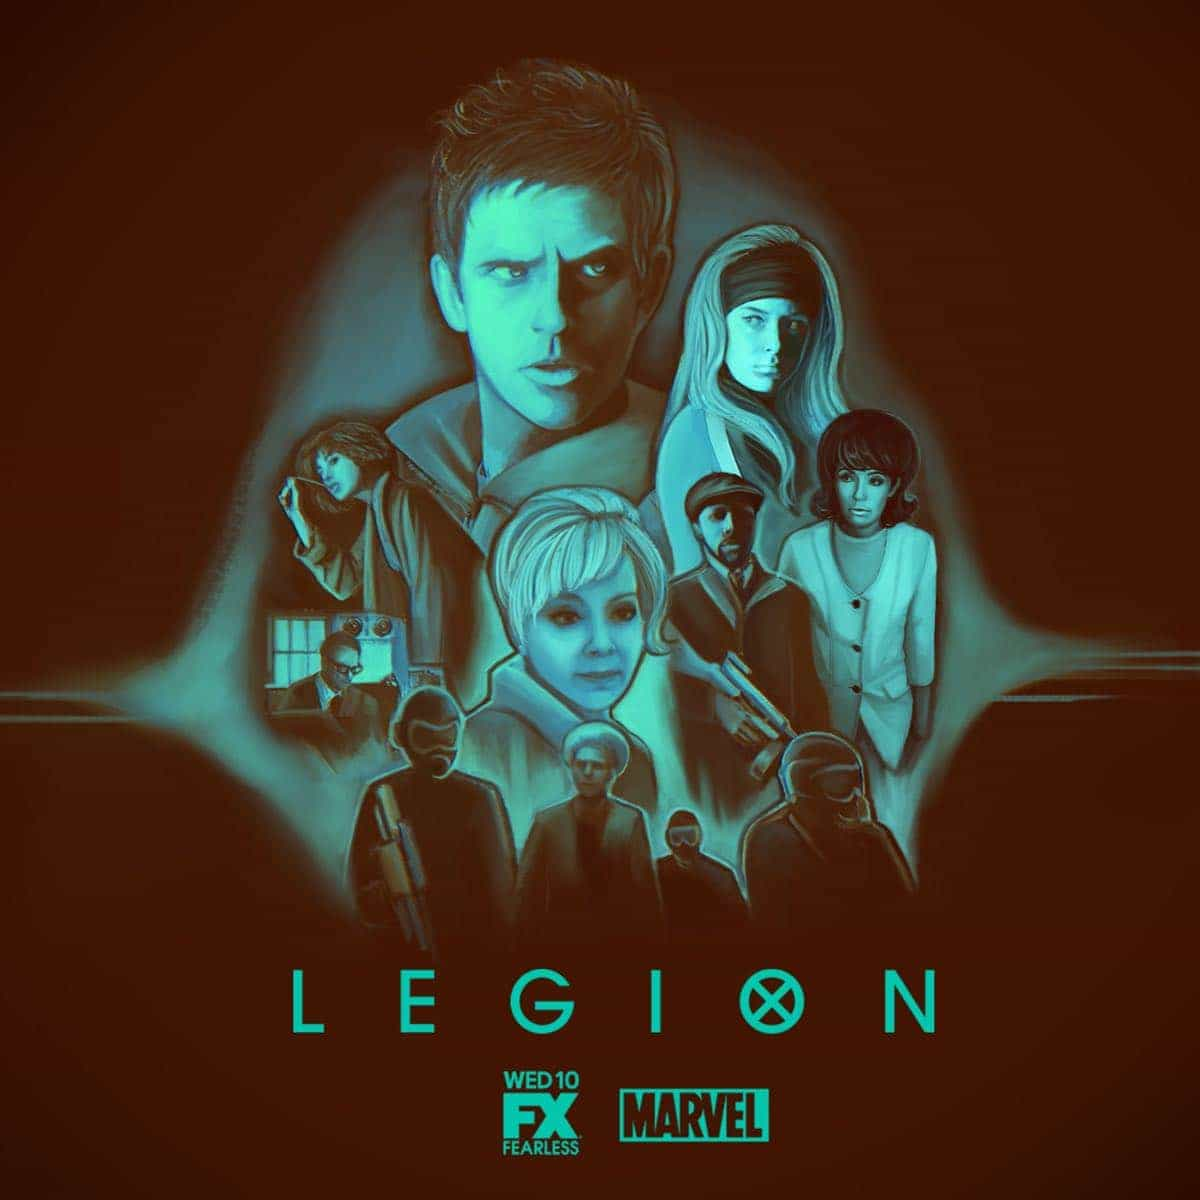 LEGION ILLUSTRATED POSTER